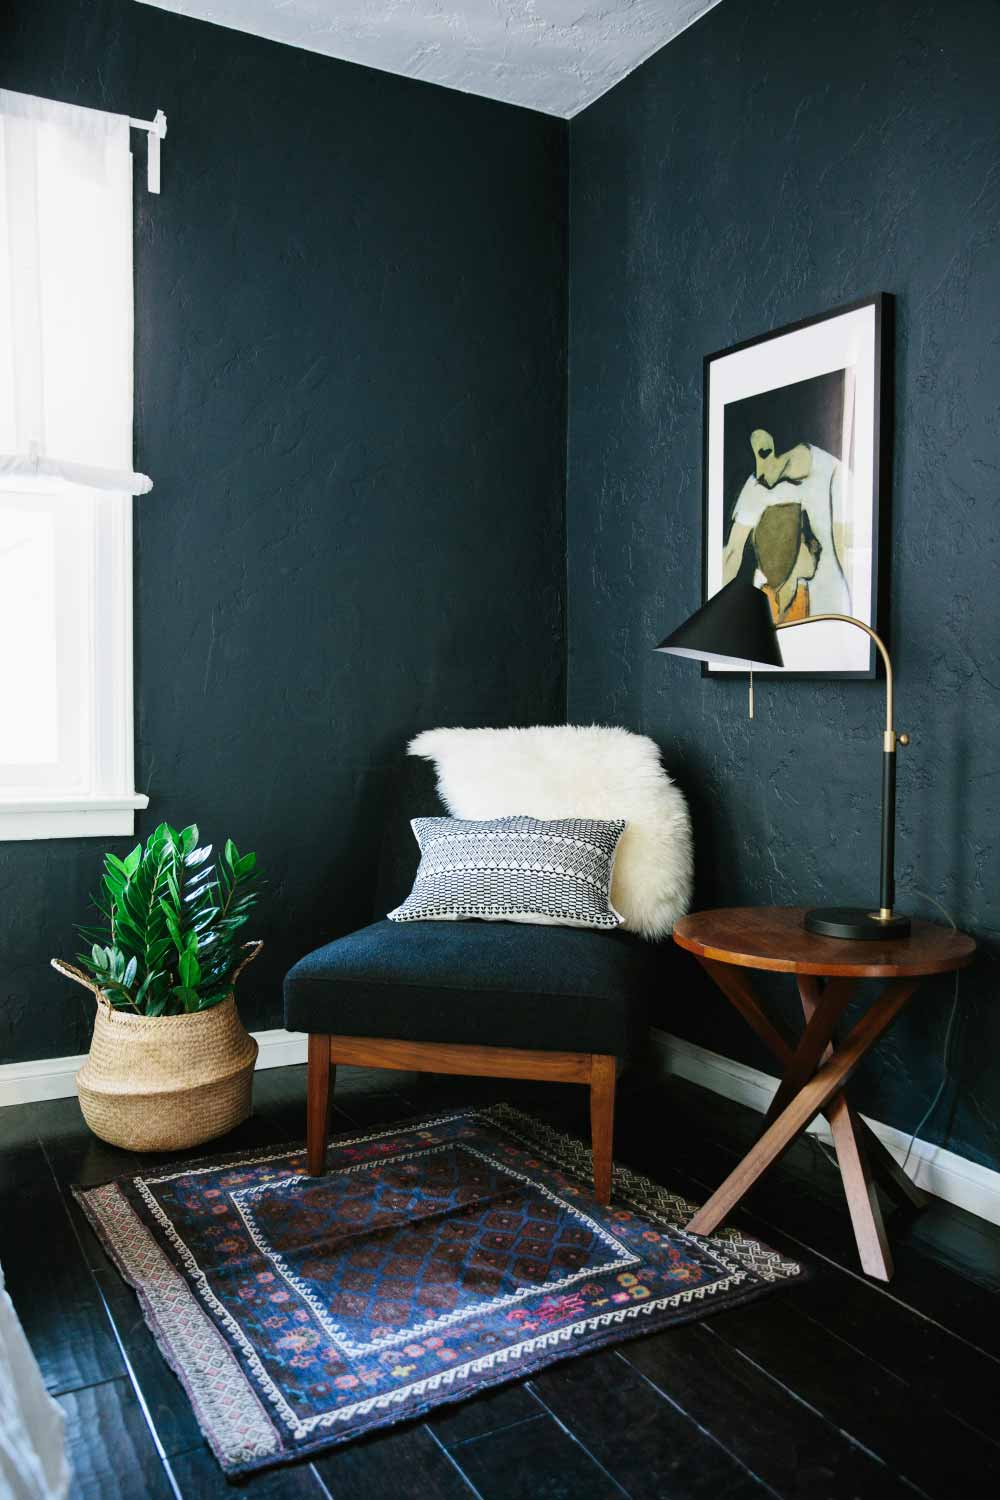 Amazing 10 Deep Teal Rooms To Die For, On Design*Sponge